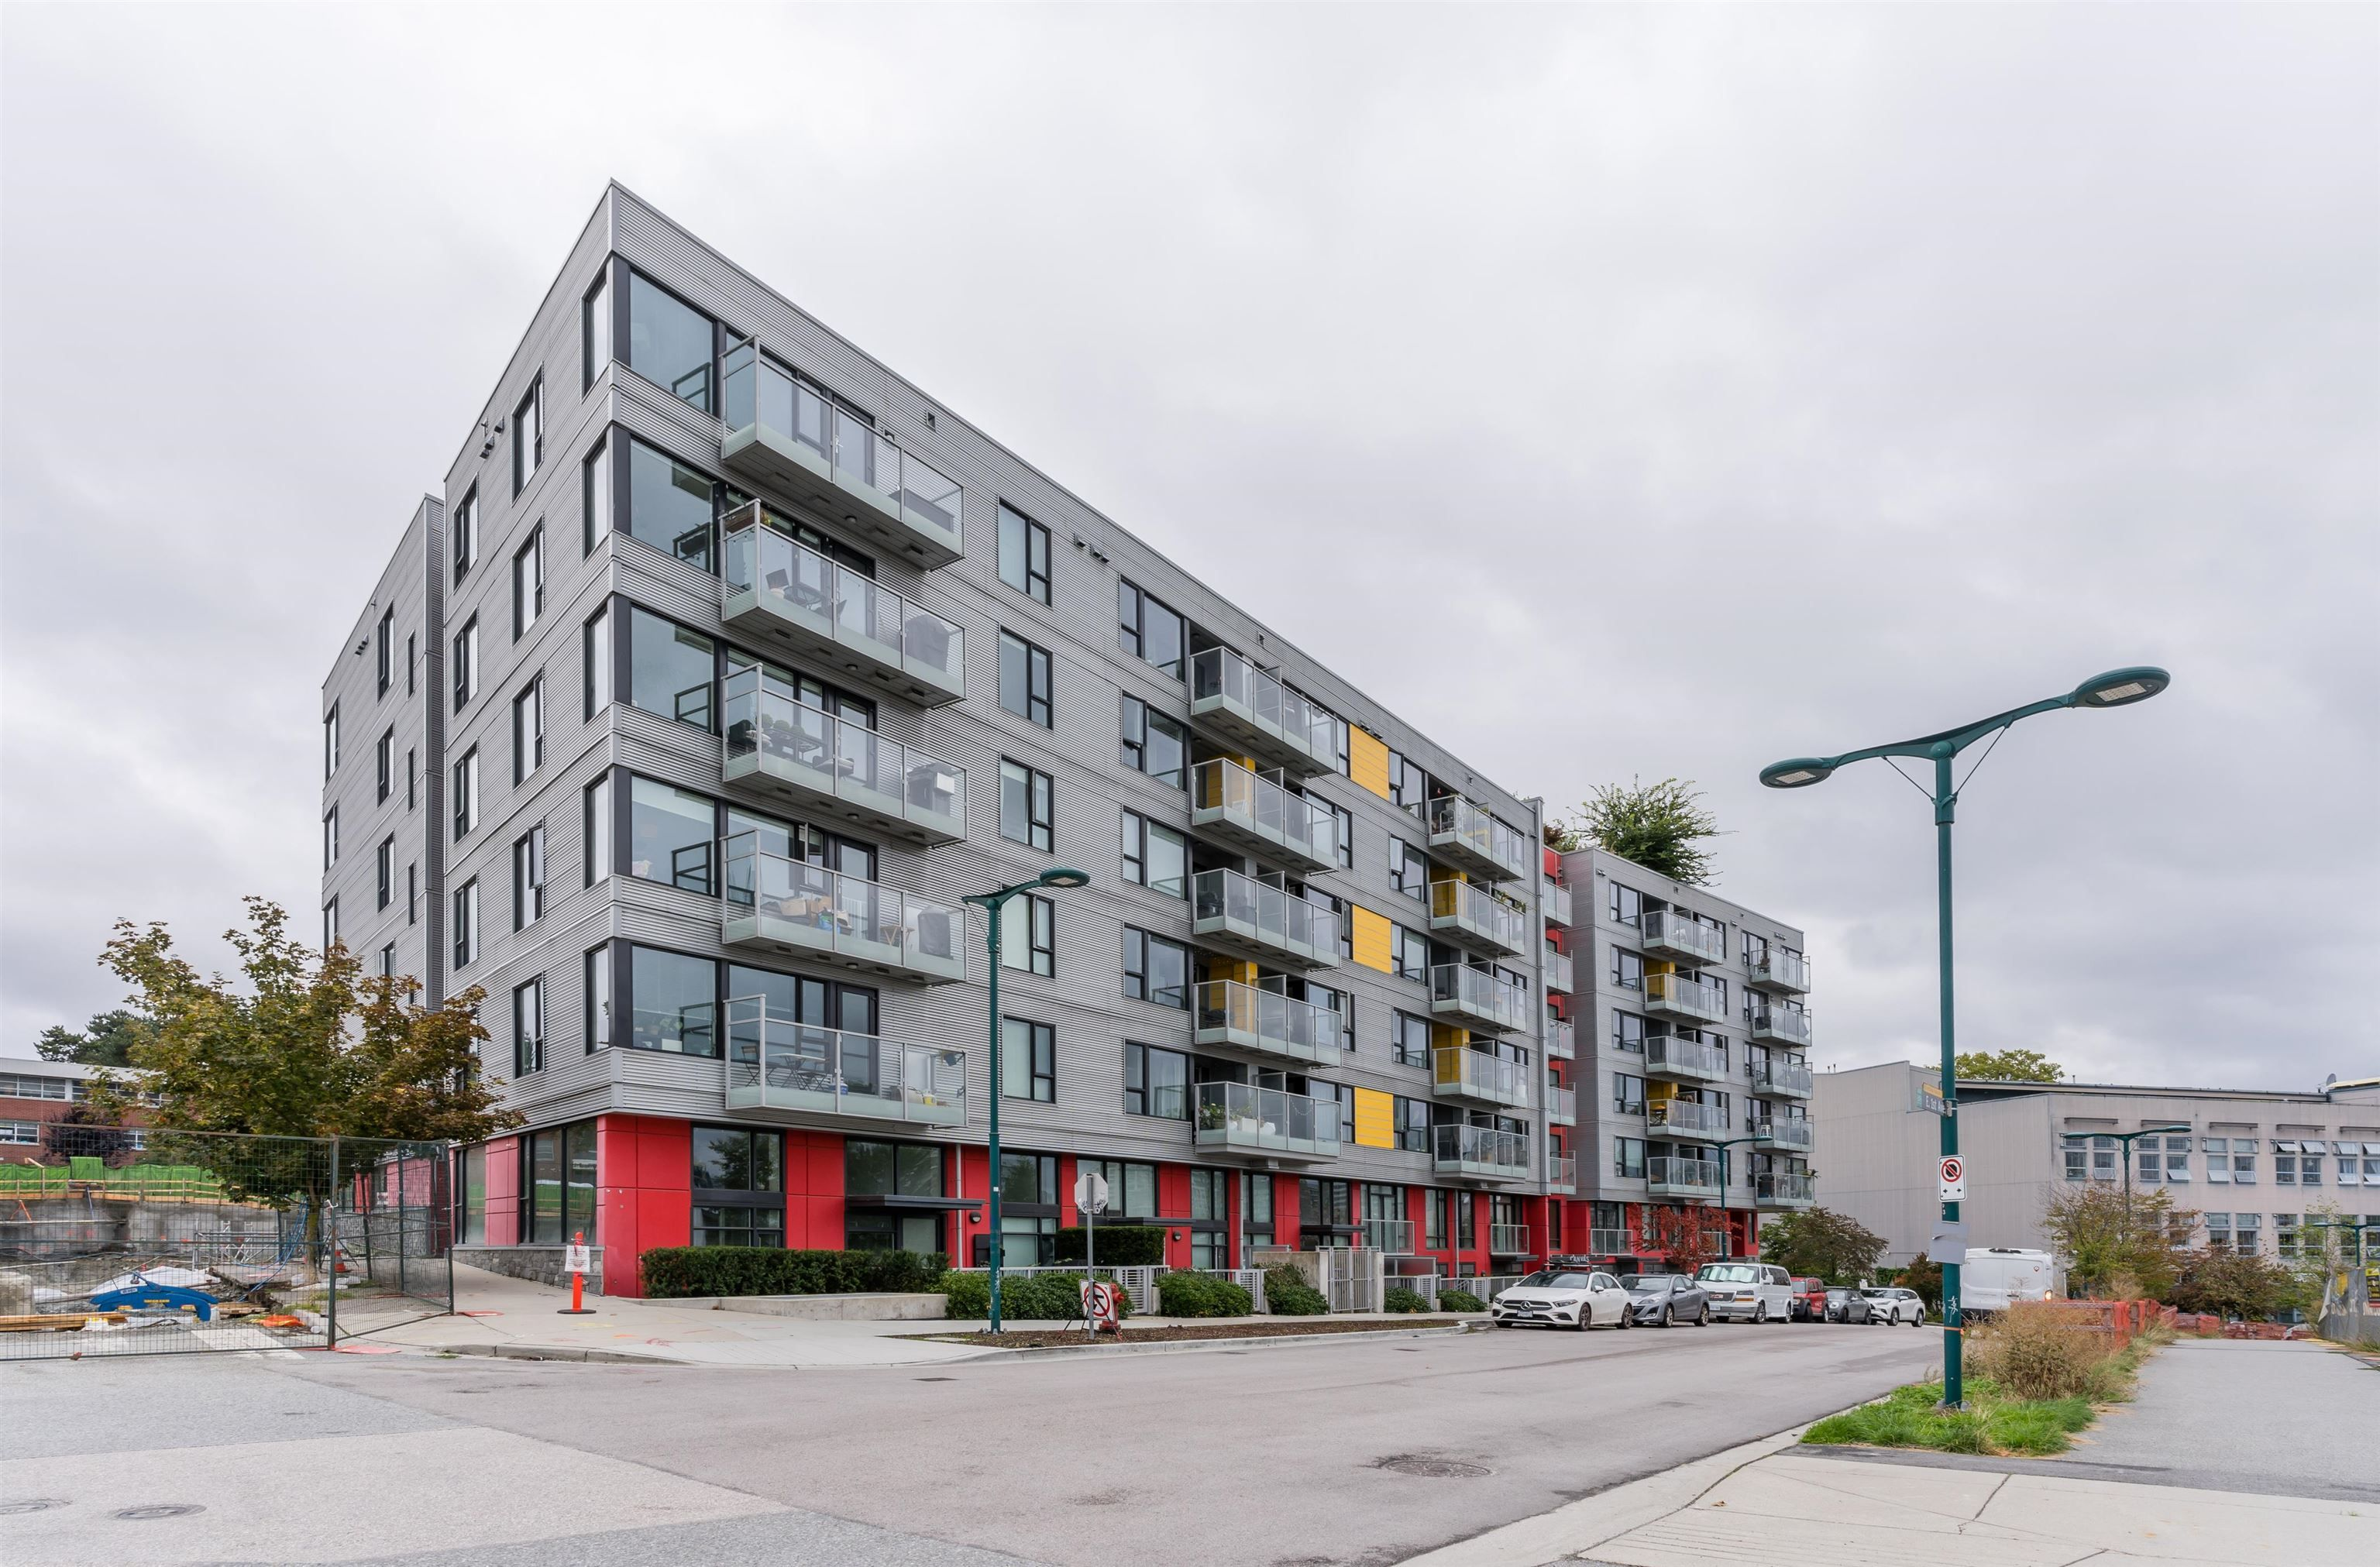 Main Photo: 704 384 E 1ST Avenue in Vancouver: Strathcona Condo for sale (Vancouver East)  : MLS®# R2620551